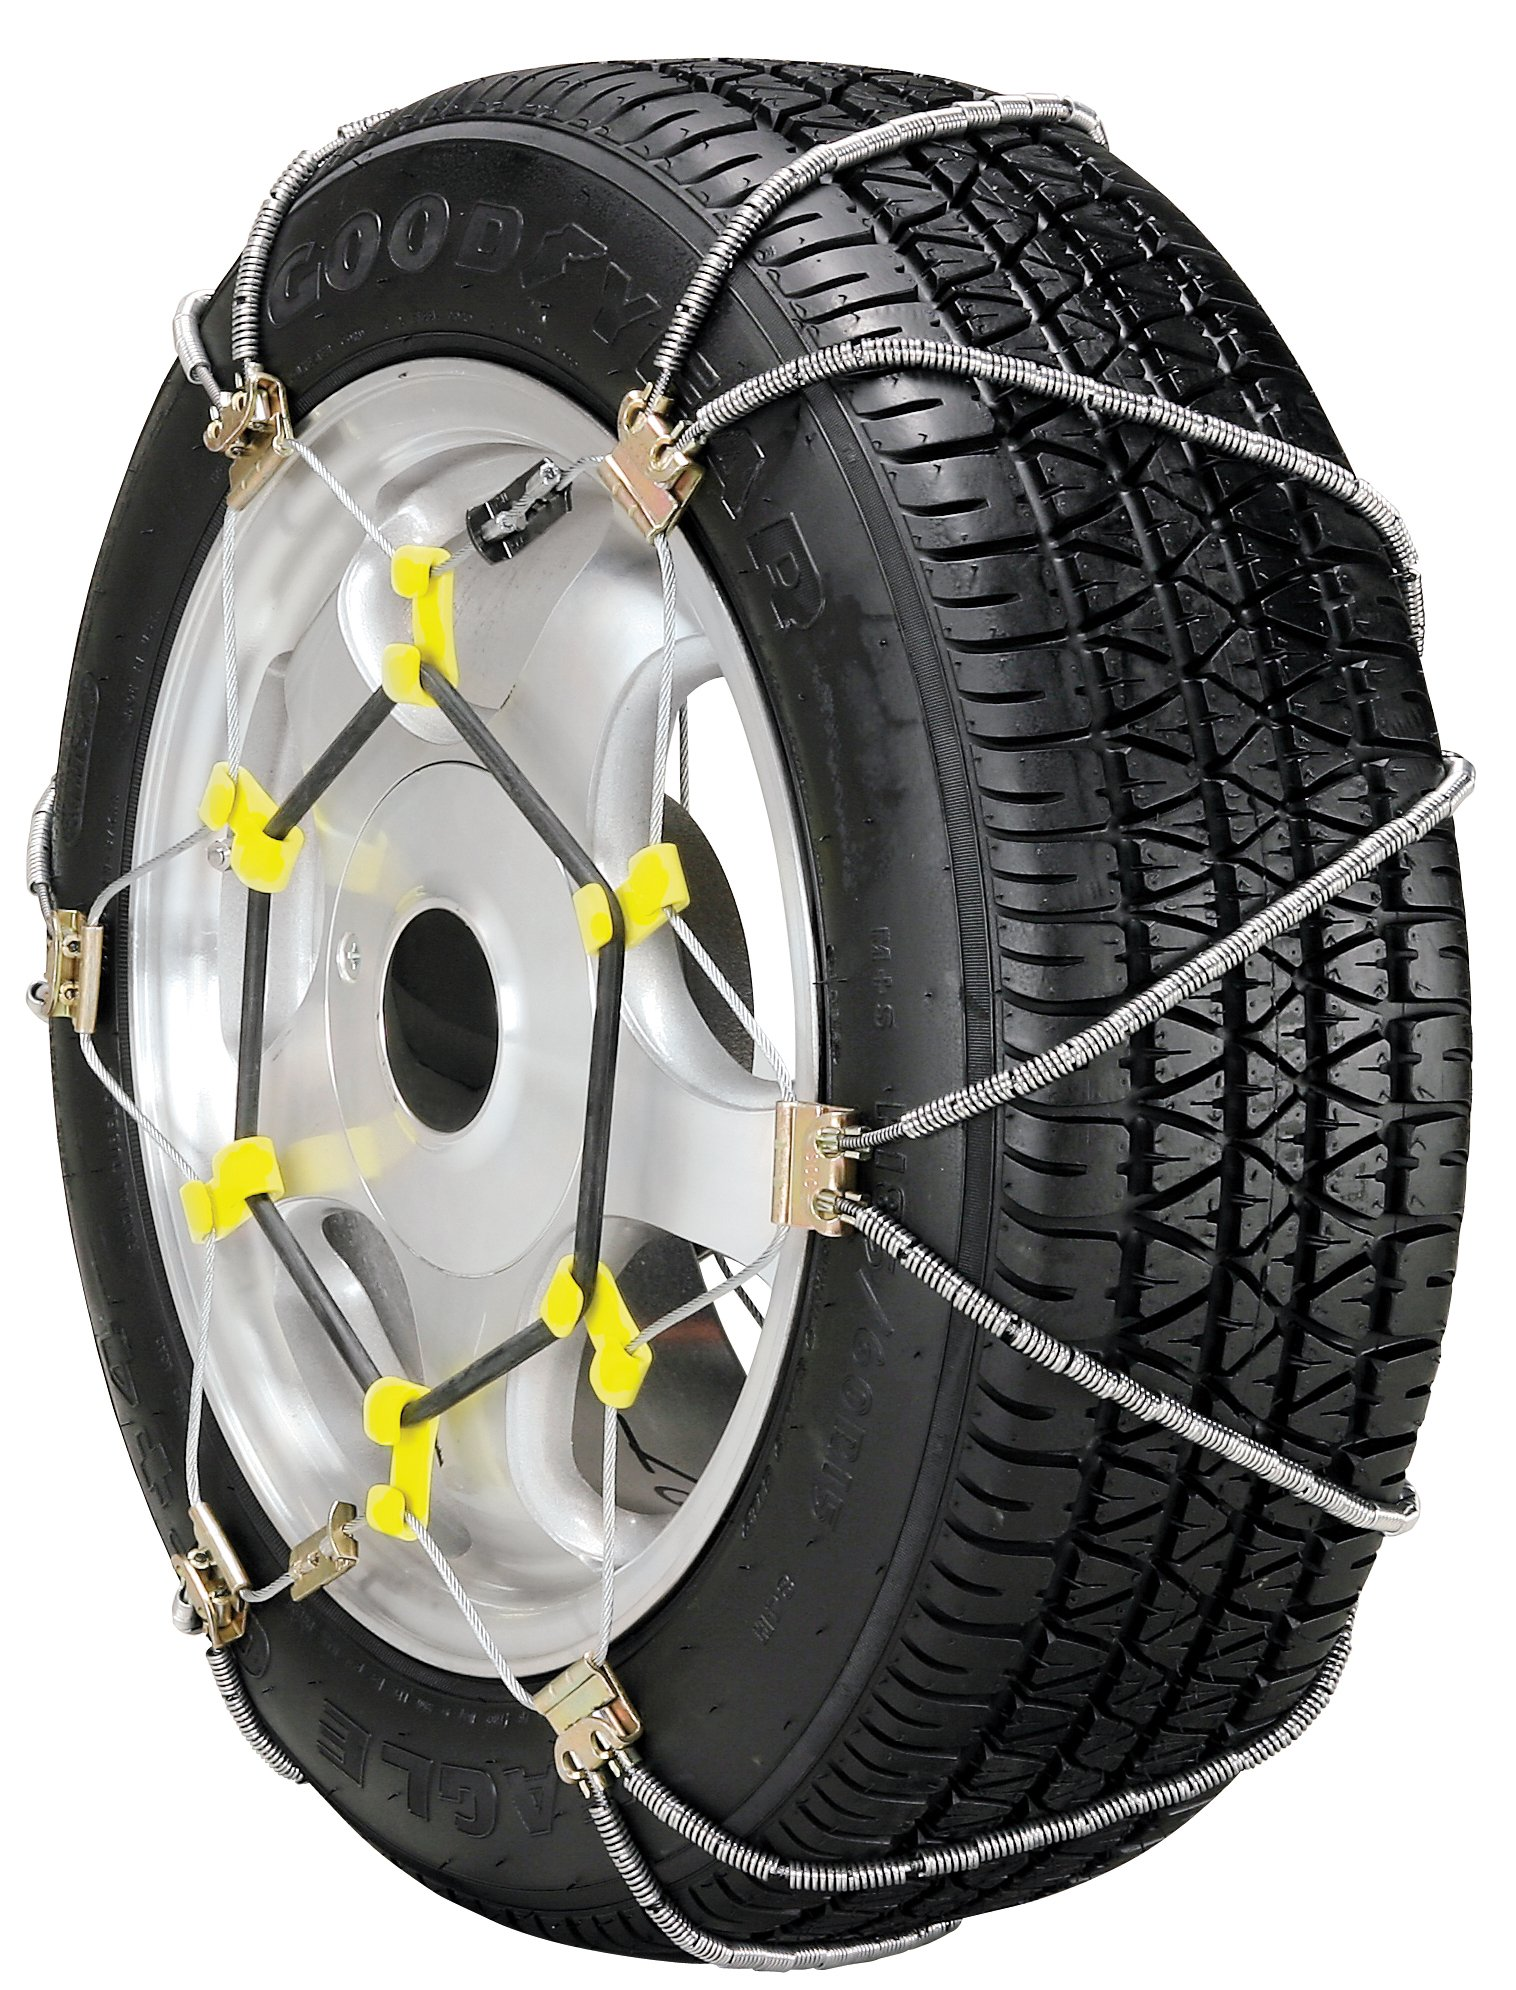 Security Chain Company SZ497 Super Z8 8mm Commercial and Light Truck Tire Traction Chain - Set of 2